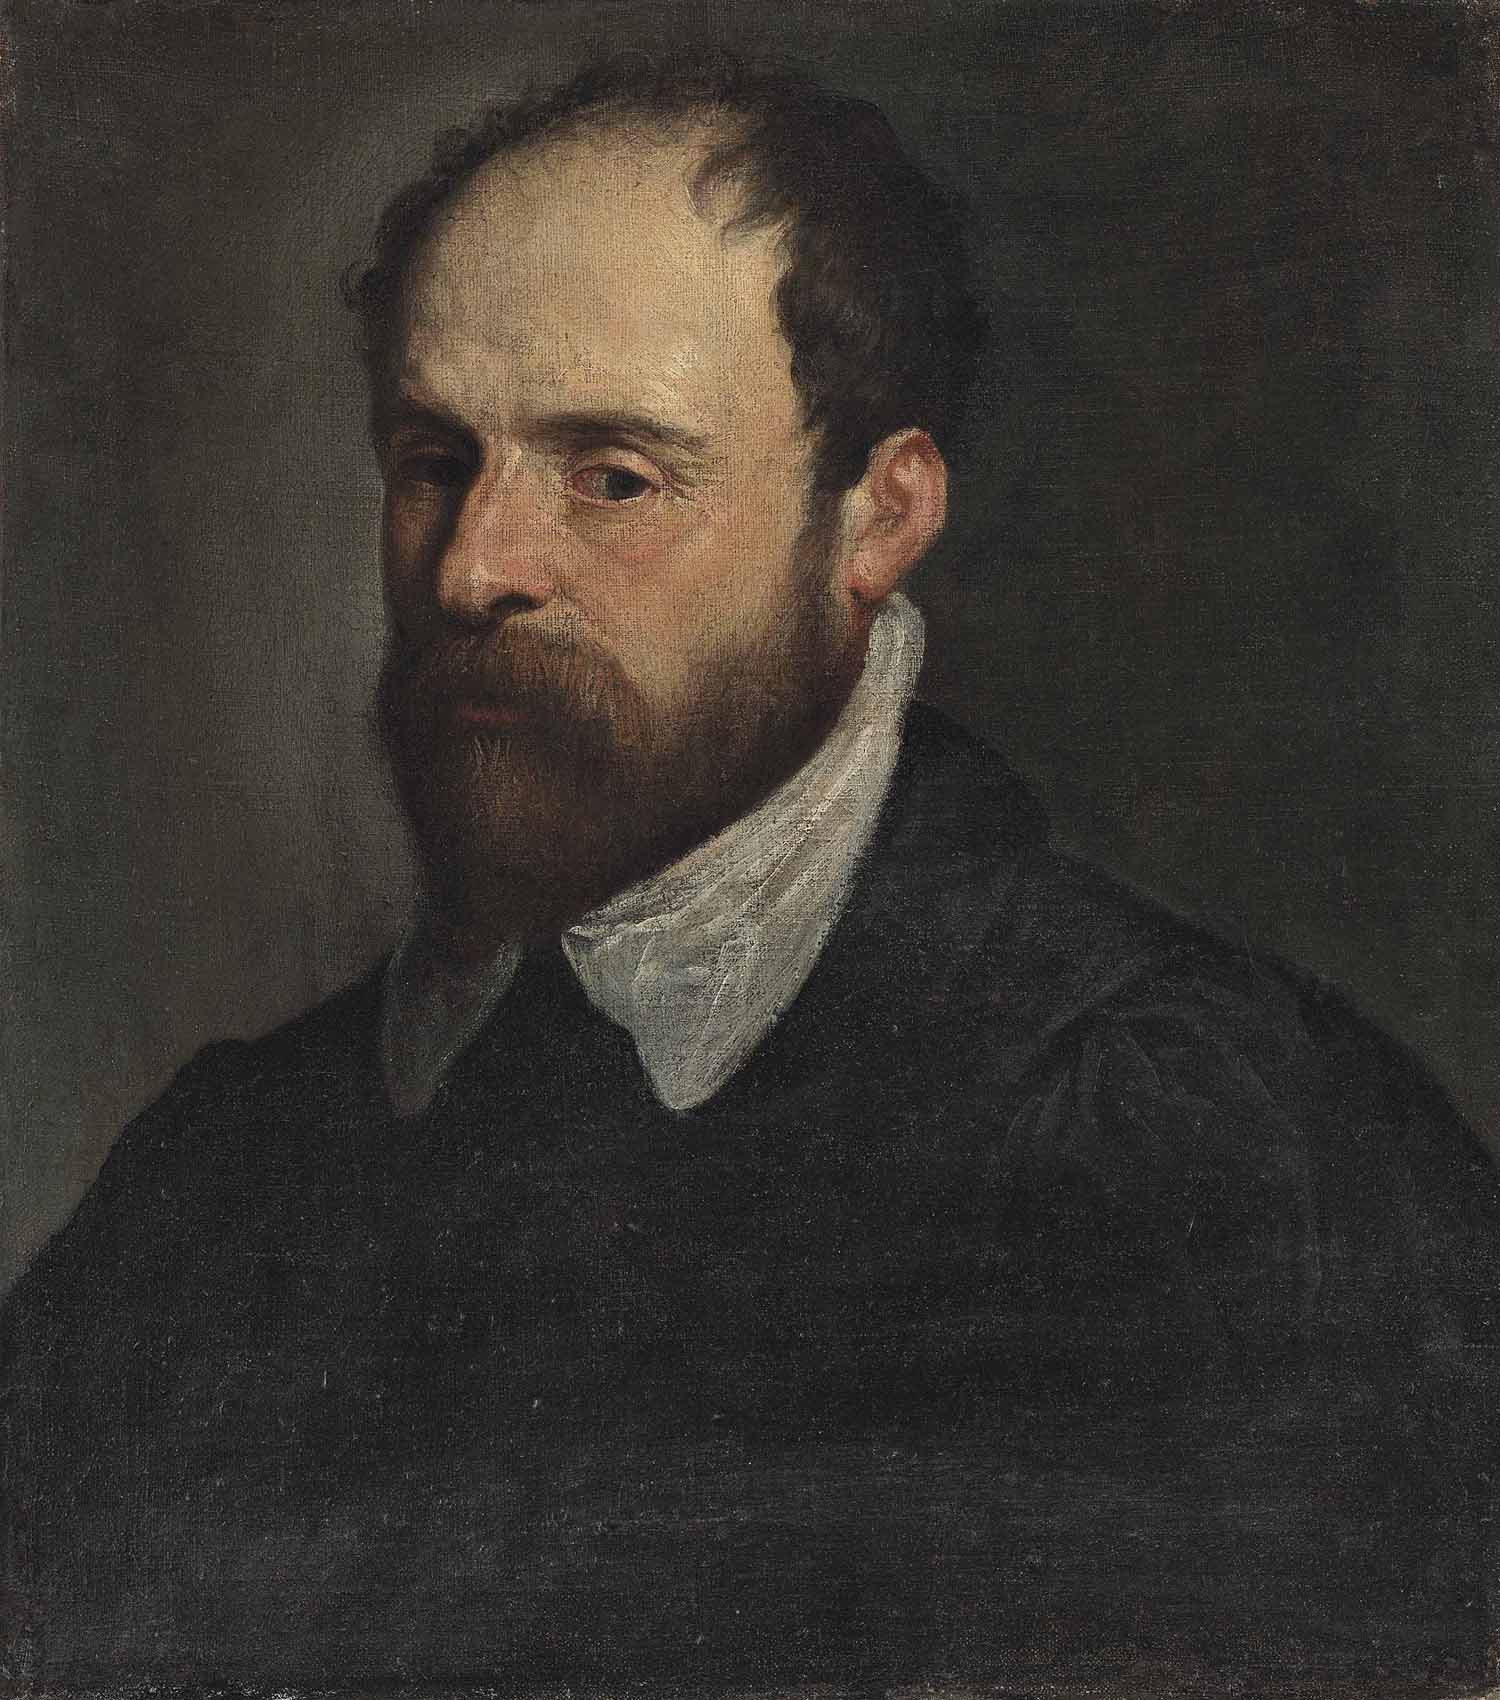 Portrait of a bearded gentleman, half-length, in a black doublet with a white collar